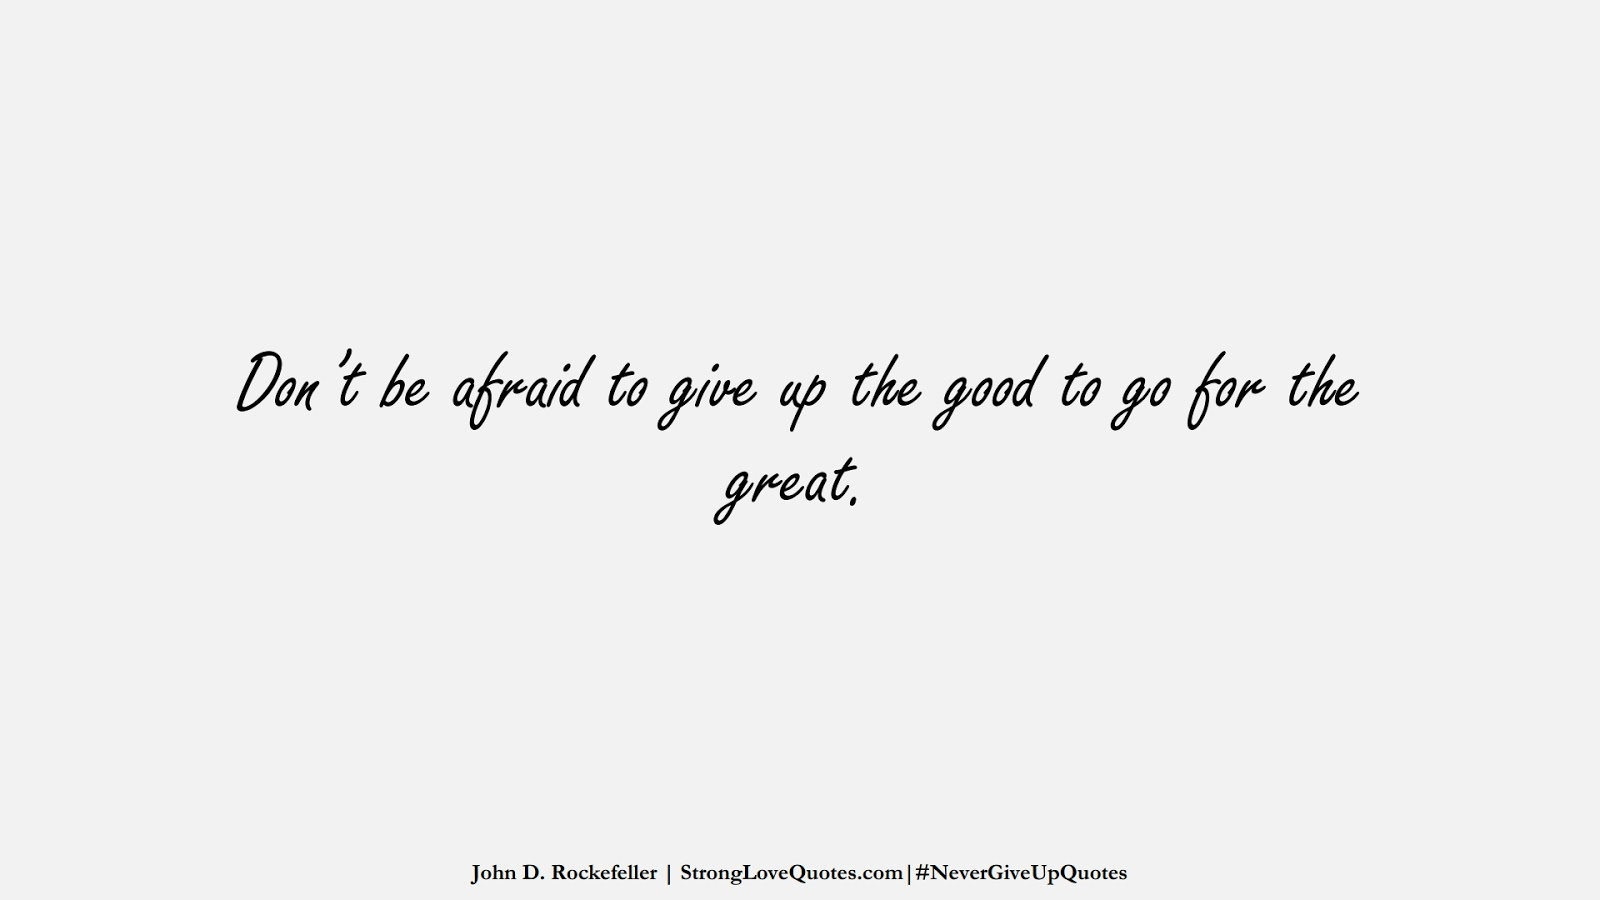 Don't be afraid to give up the good to go for the great. (John D. Rockefeller);  #NeverGiveUpQuotes